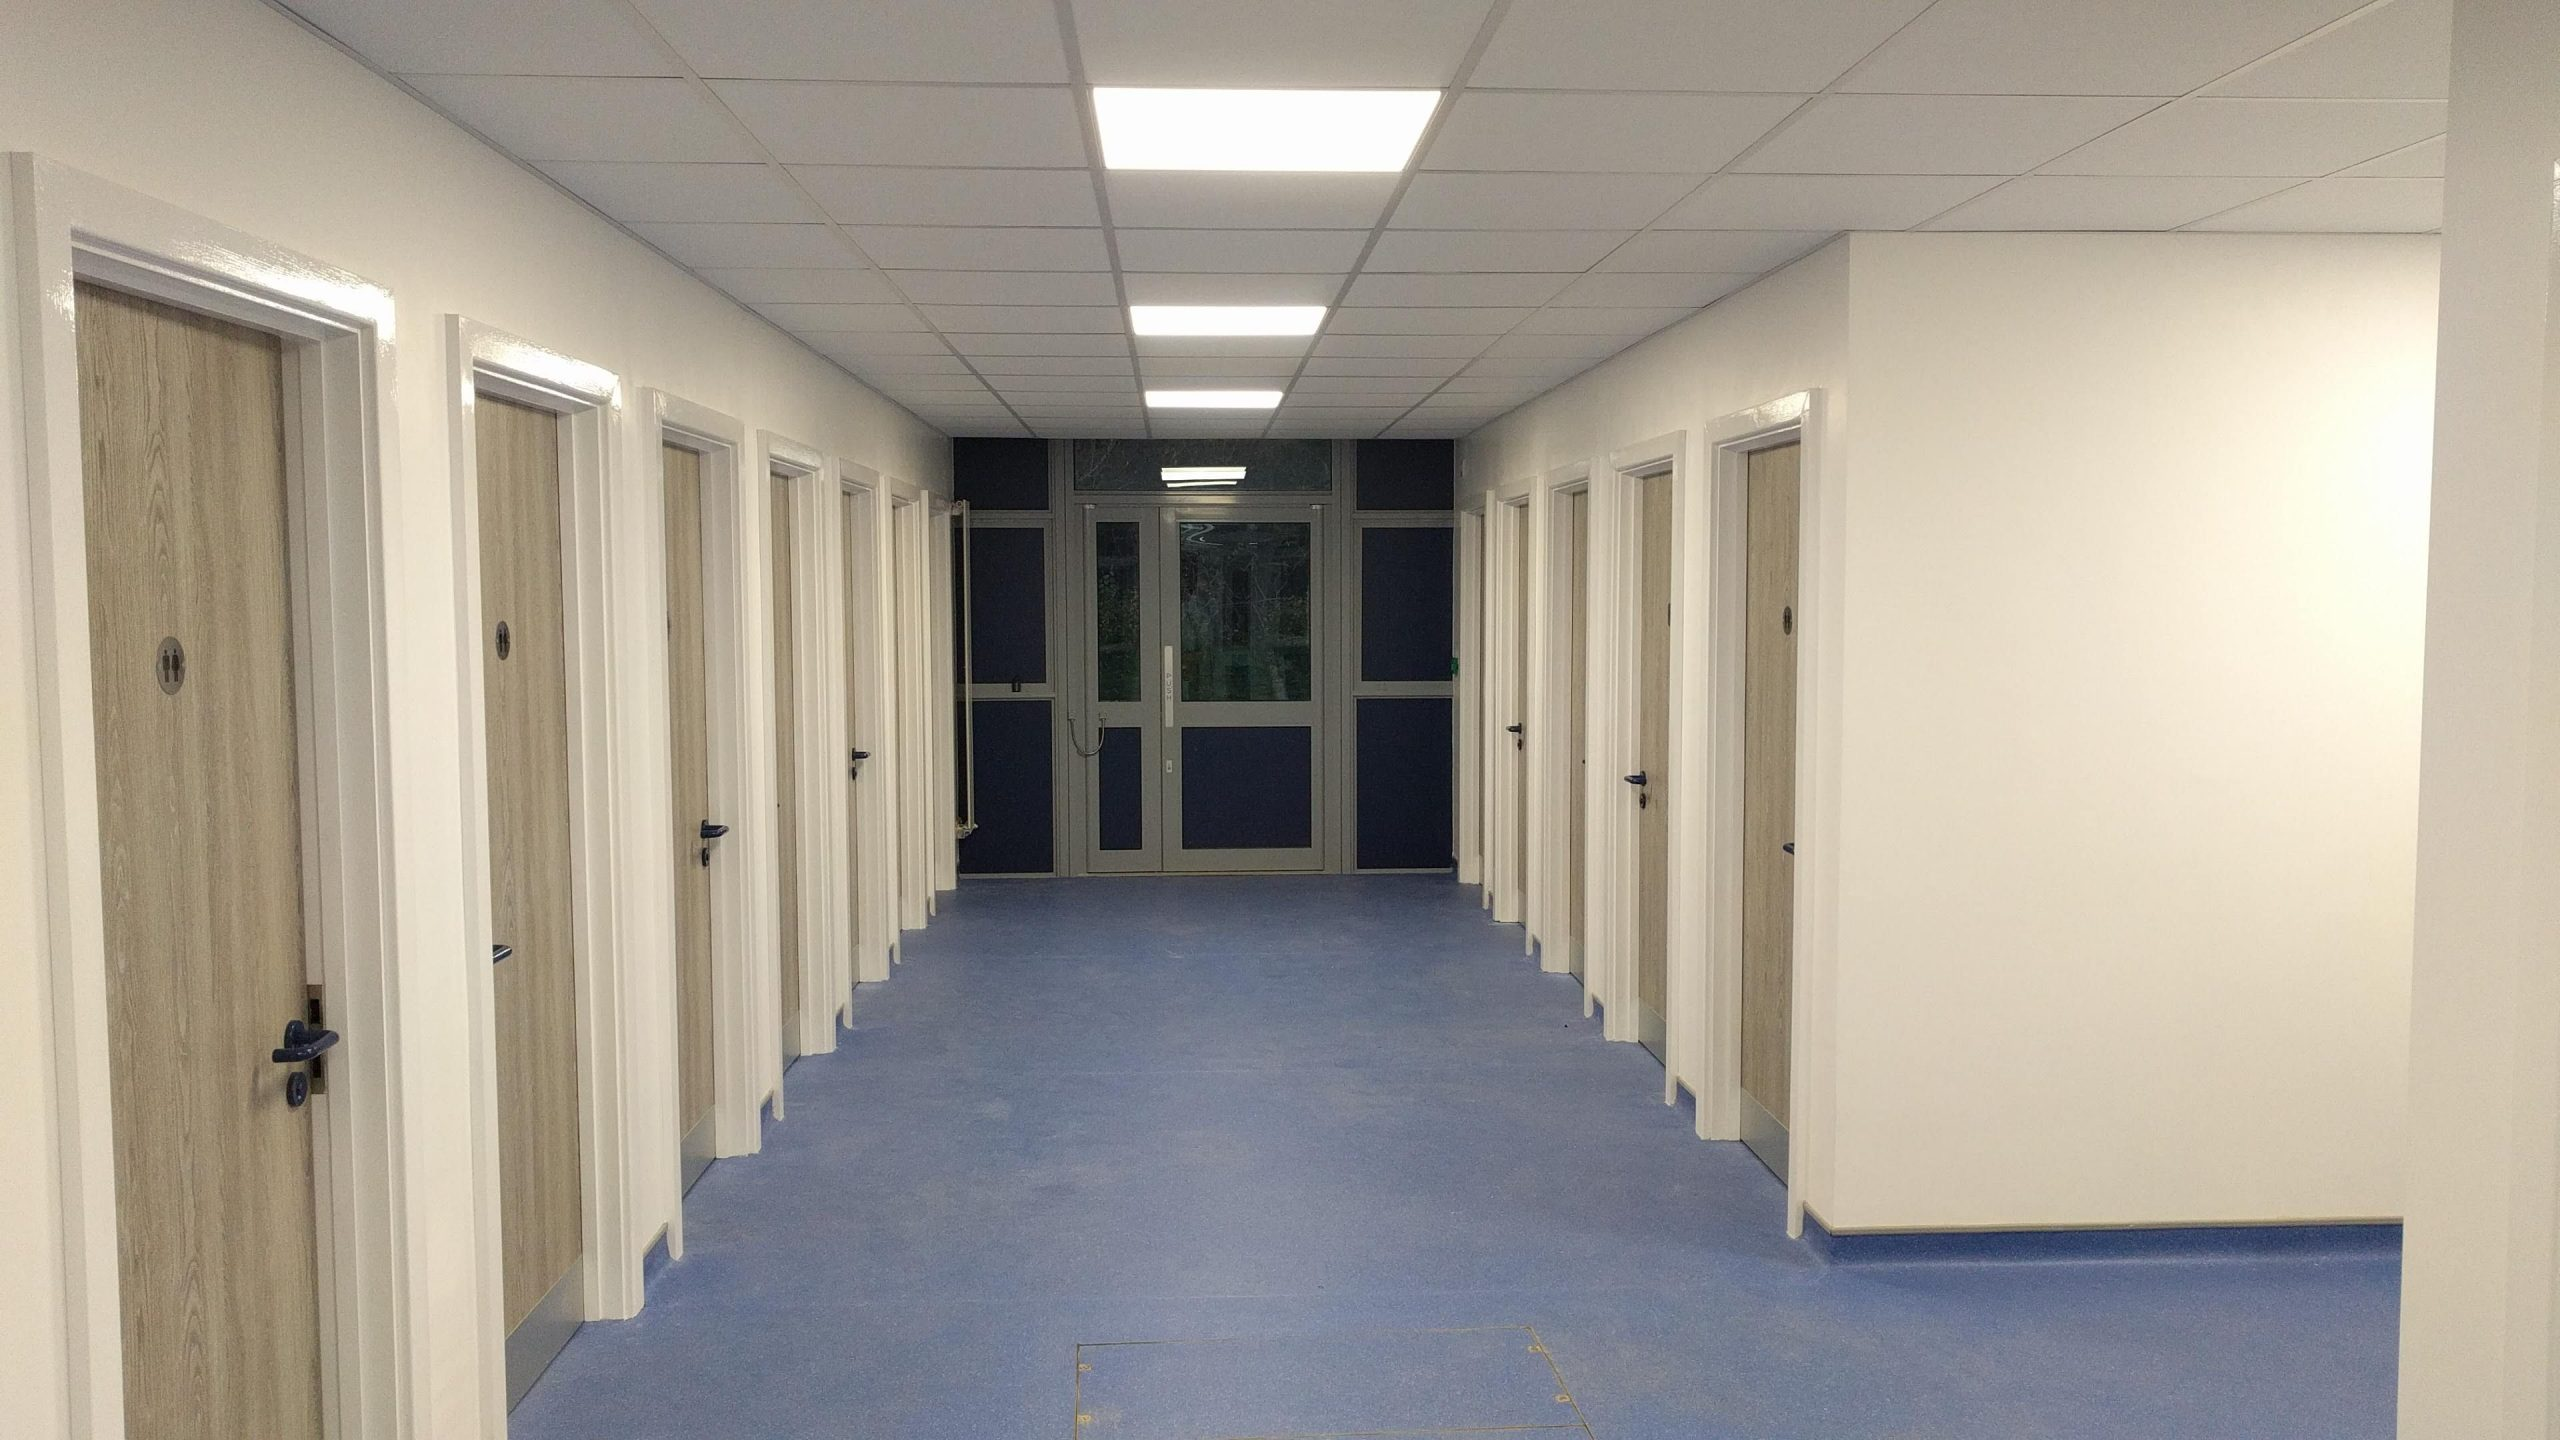 Watford Grammar - Washroom Refurbishment